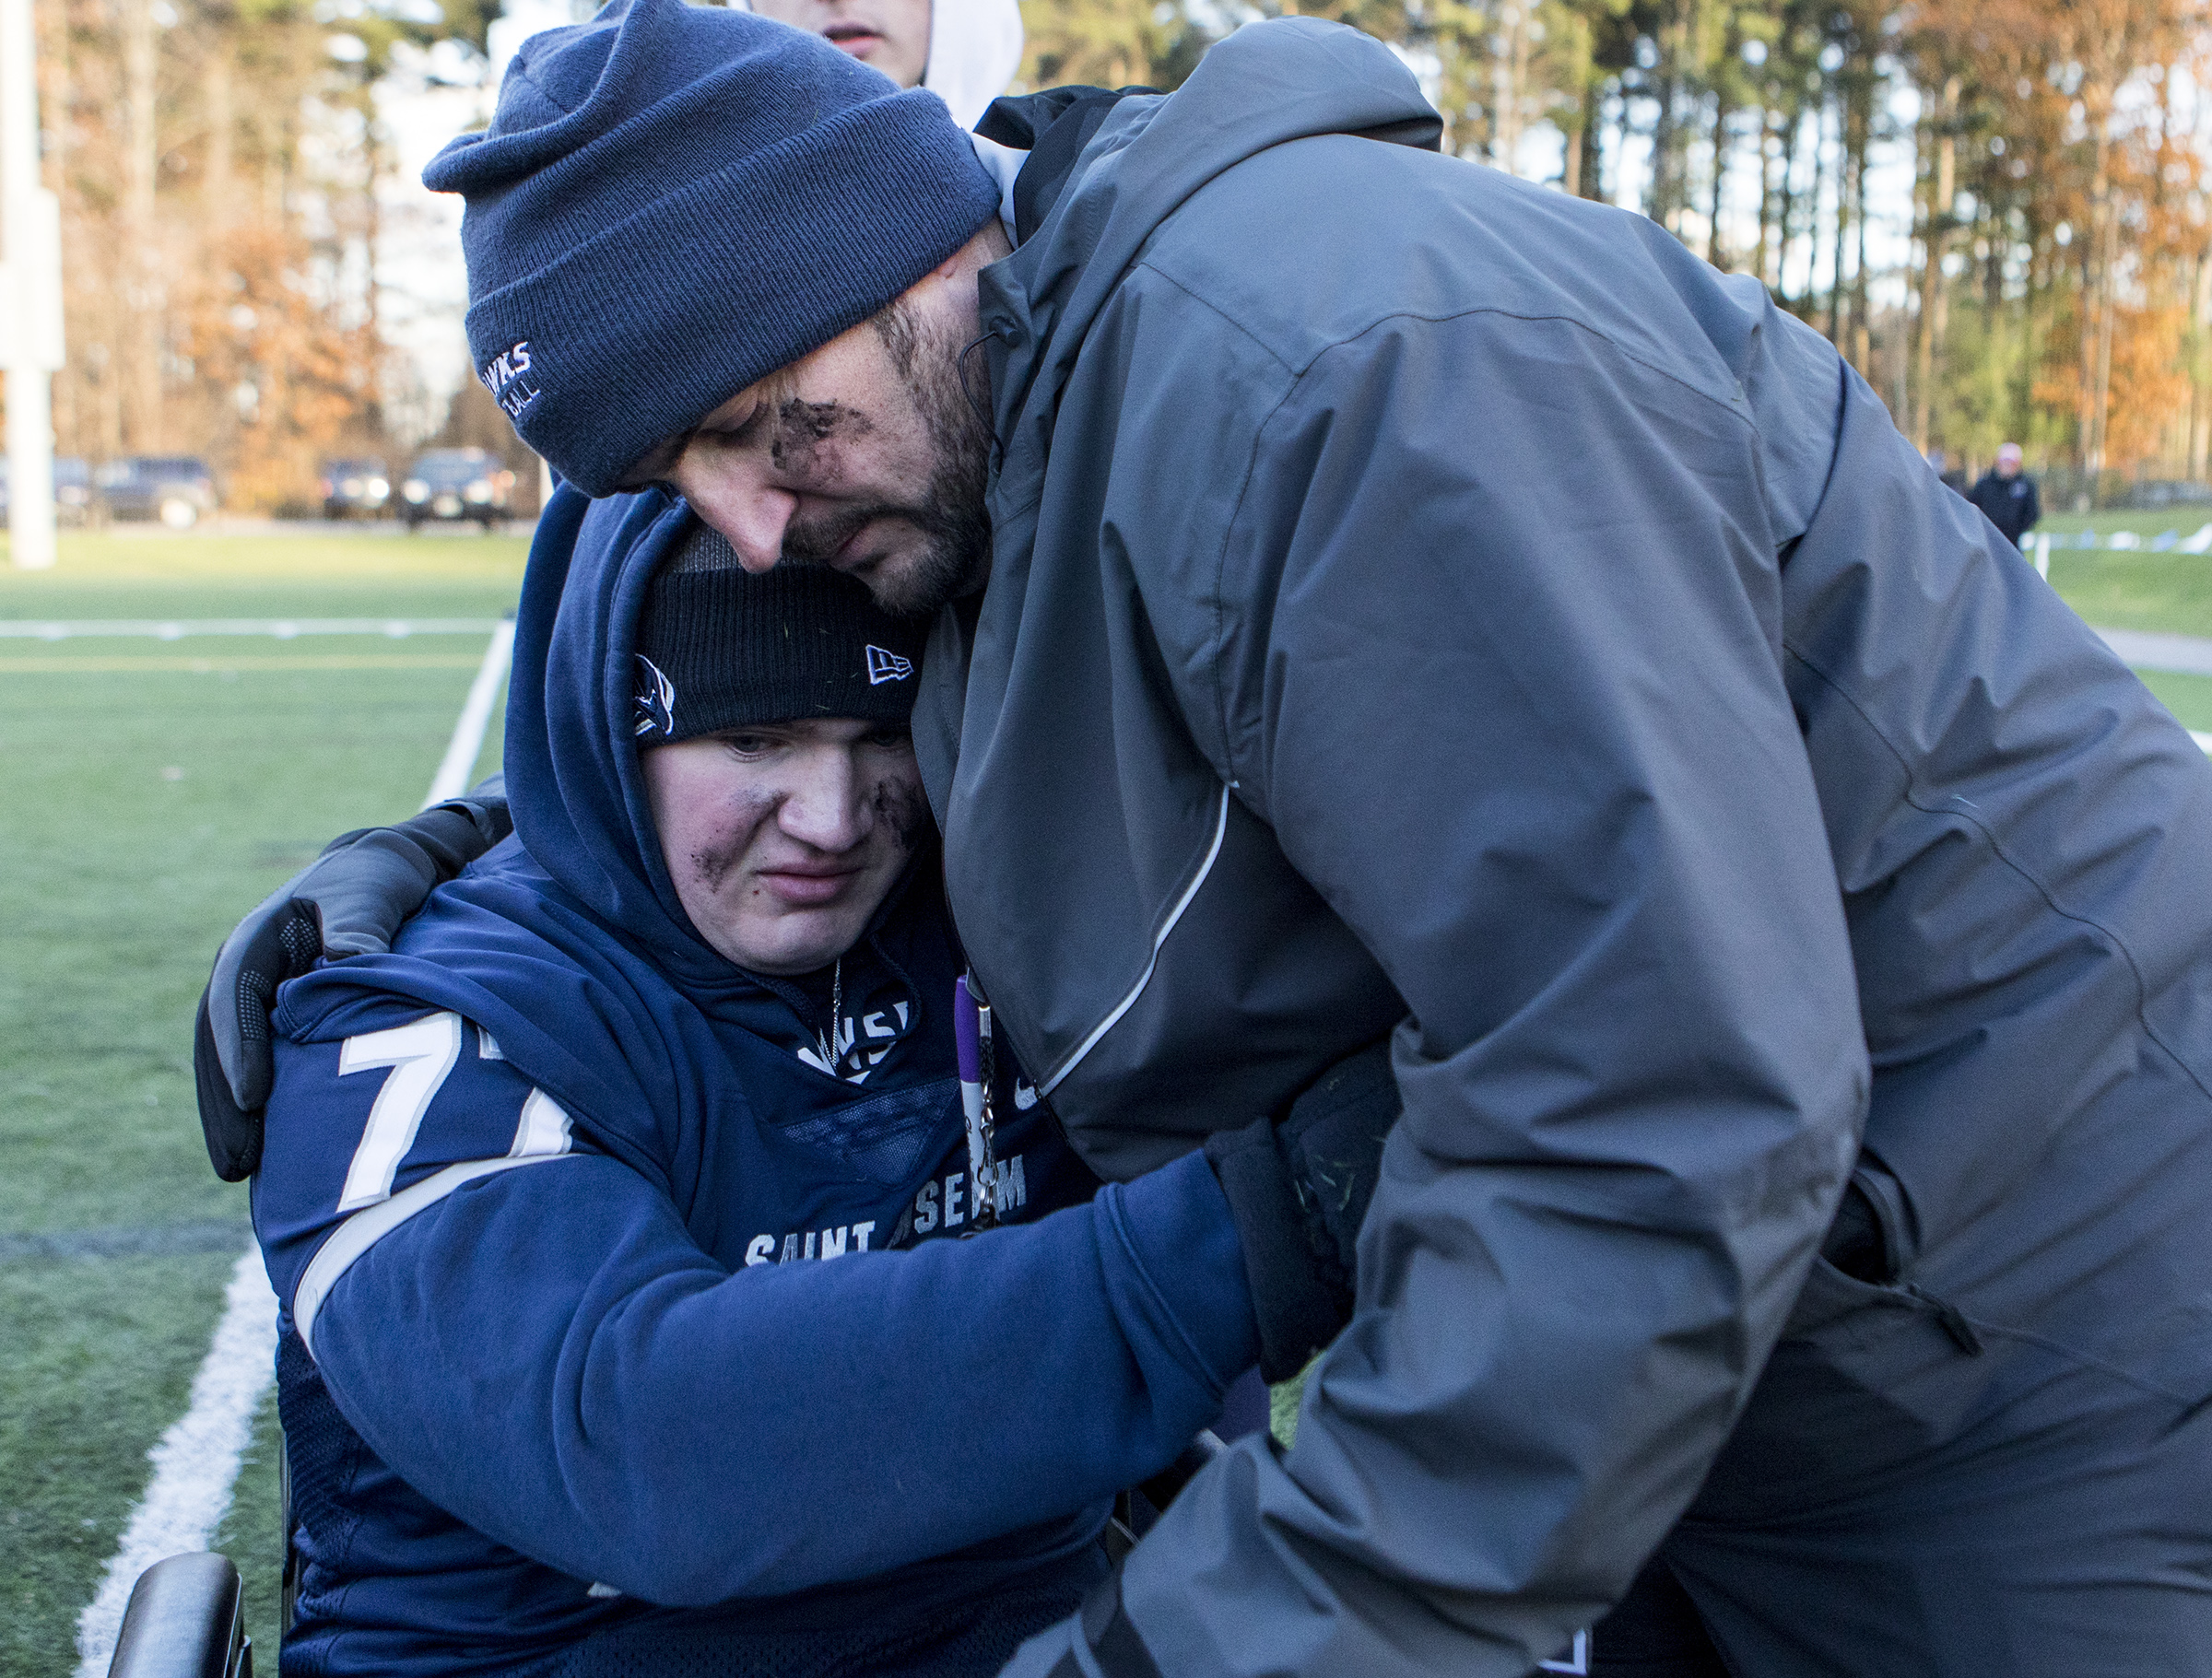 Connor hugs coach Joe Adam after the final football game of the season at Saint Anselm College in Manchester, New Hampshire, on Nov. 10, 2018.